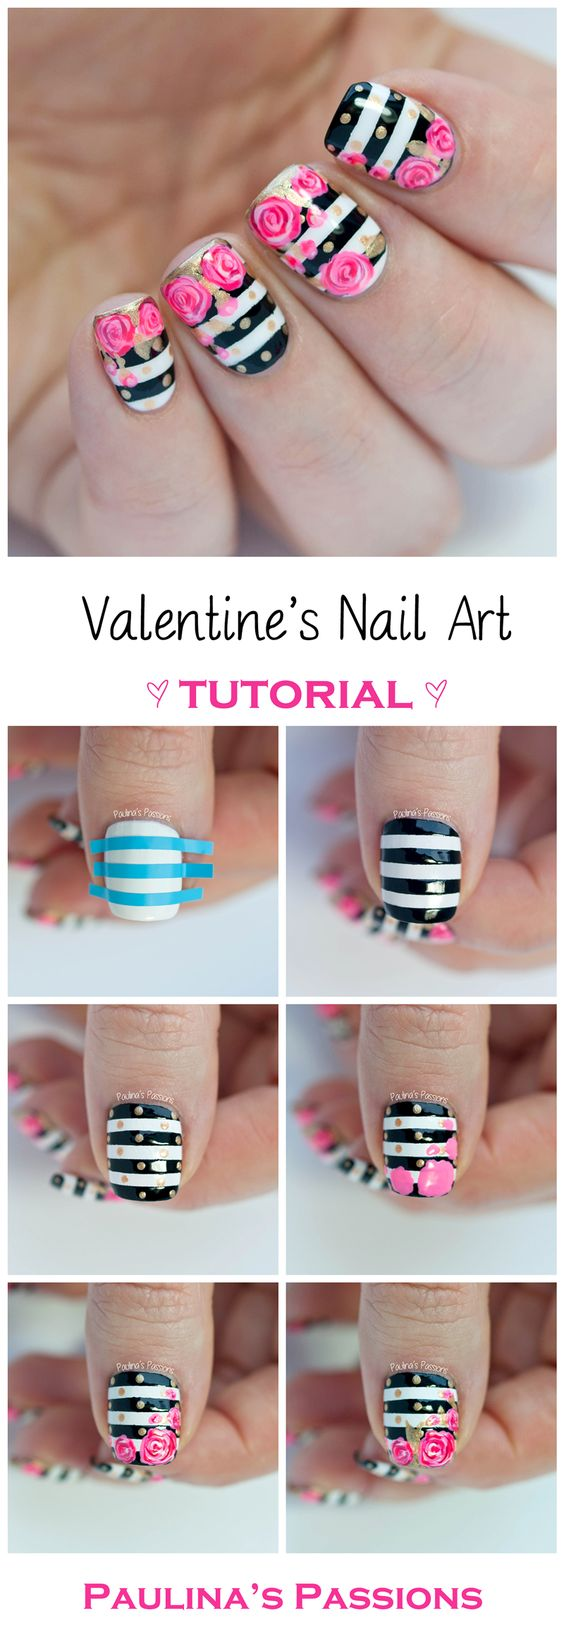 30 easy and fun nail art tutorials 2017 valentines roses nail art prinsesfo Gallery